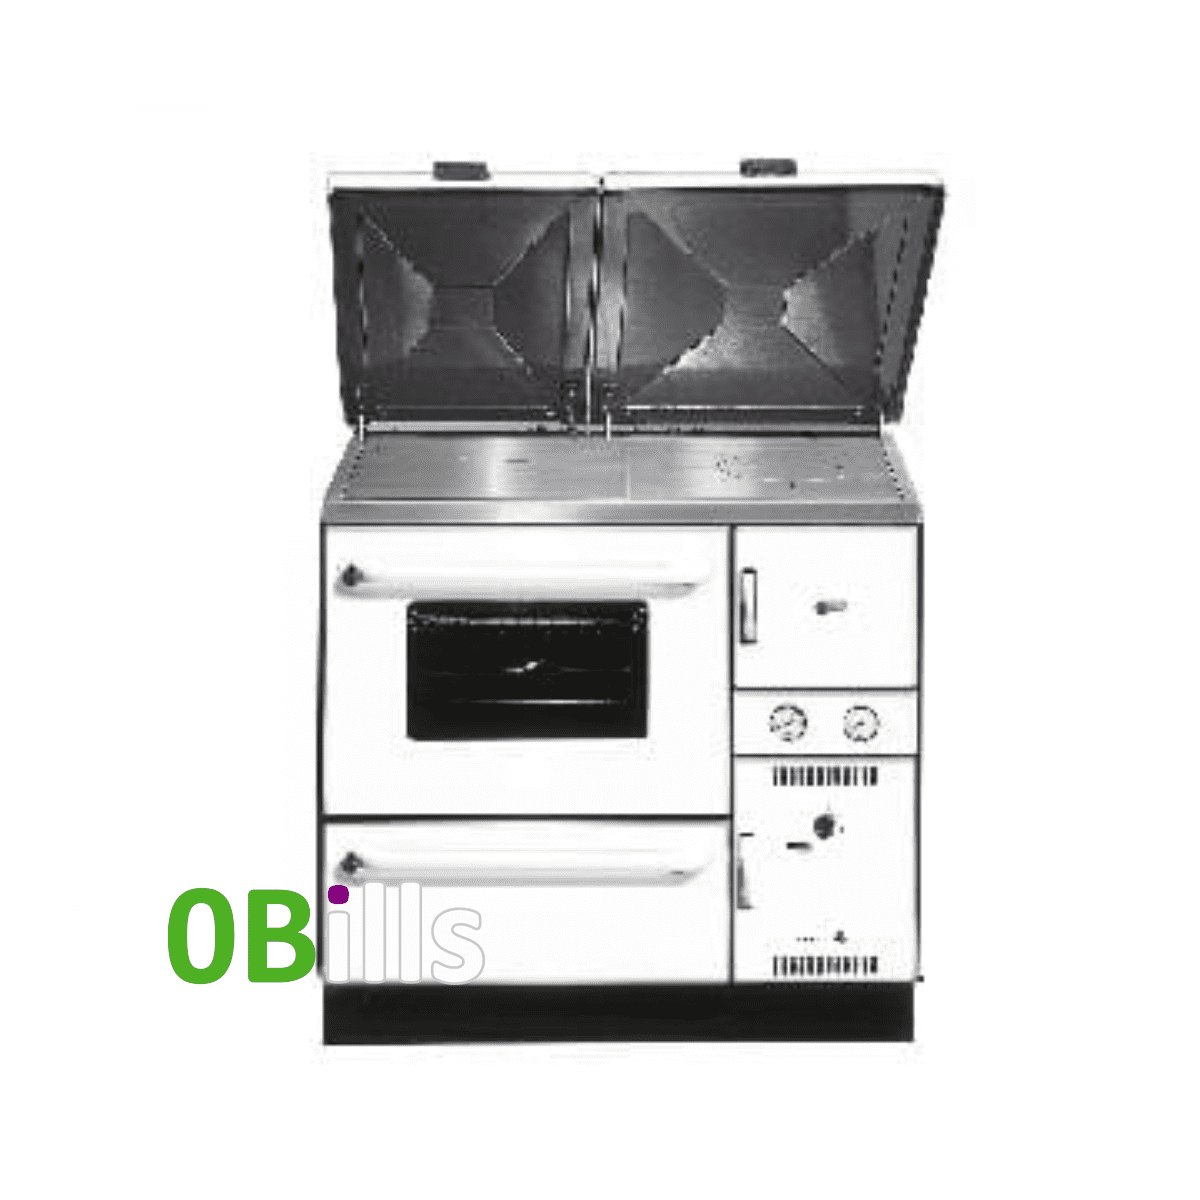 Wamsler 900 Series (K148) central heating cooker stove WHITE (Left)